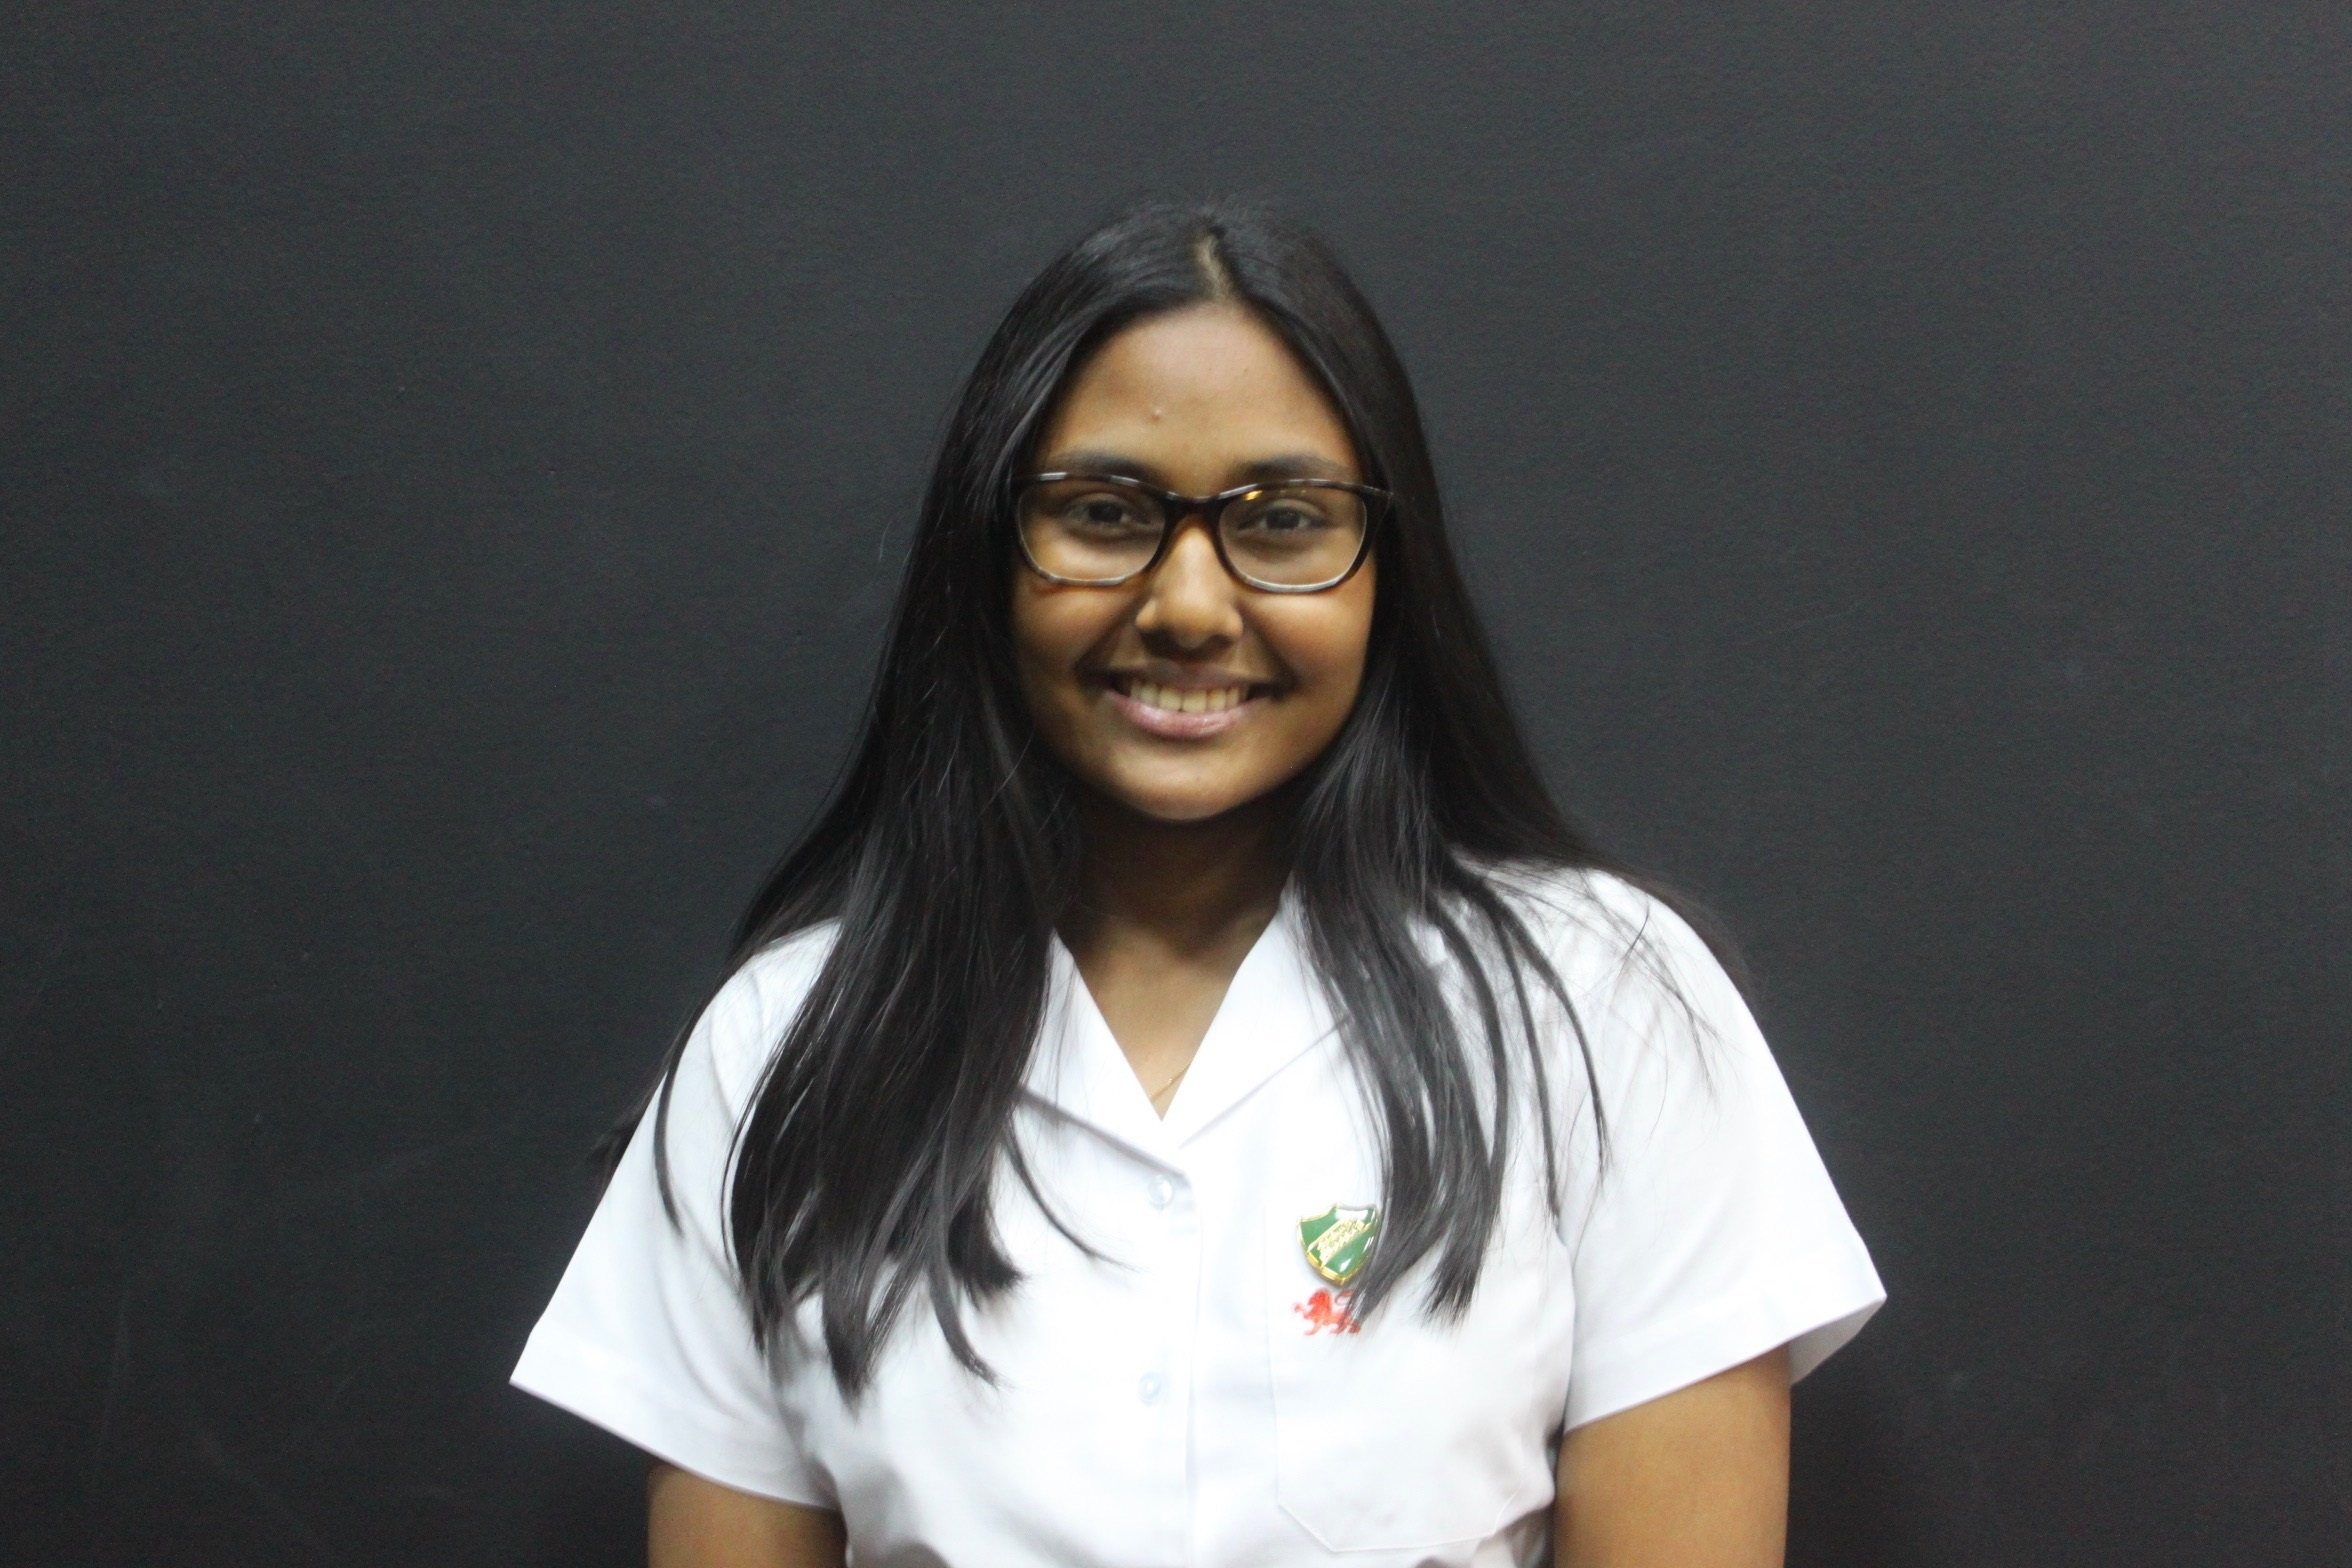 NUHANSA WIJESURIYA - DEPUTY SECRETARY GENERAL - Three years of MUN has lead to Nuhansa finding her passion for world affairs and helping shed light on the atrocities we live amongst. She is incredibly humbled by the opportunity to be the Deputy Secretary General of her last PHESMUN conference and is excited at the prospect of creating a platform for the youth in Qatar. Nuhansa is thankful that she is able to make her mark on behalf of the PHESMUN conference and aims to inspire individuals to raise their voices. She hopes to share the knowledge she's gained from this community to catalyse change for the better.